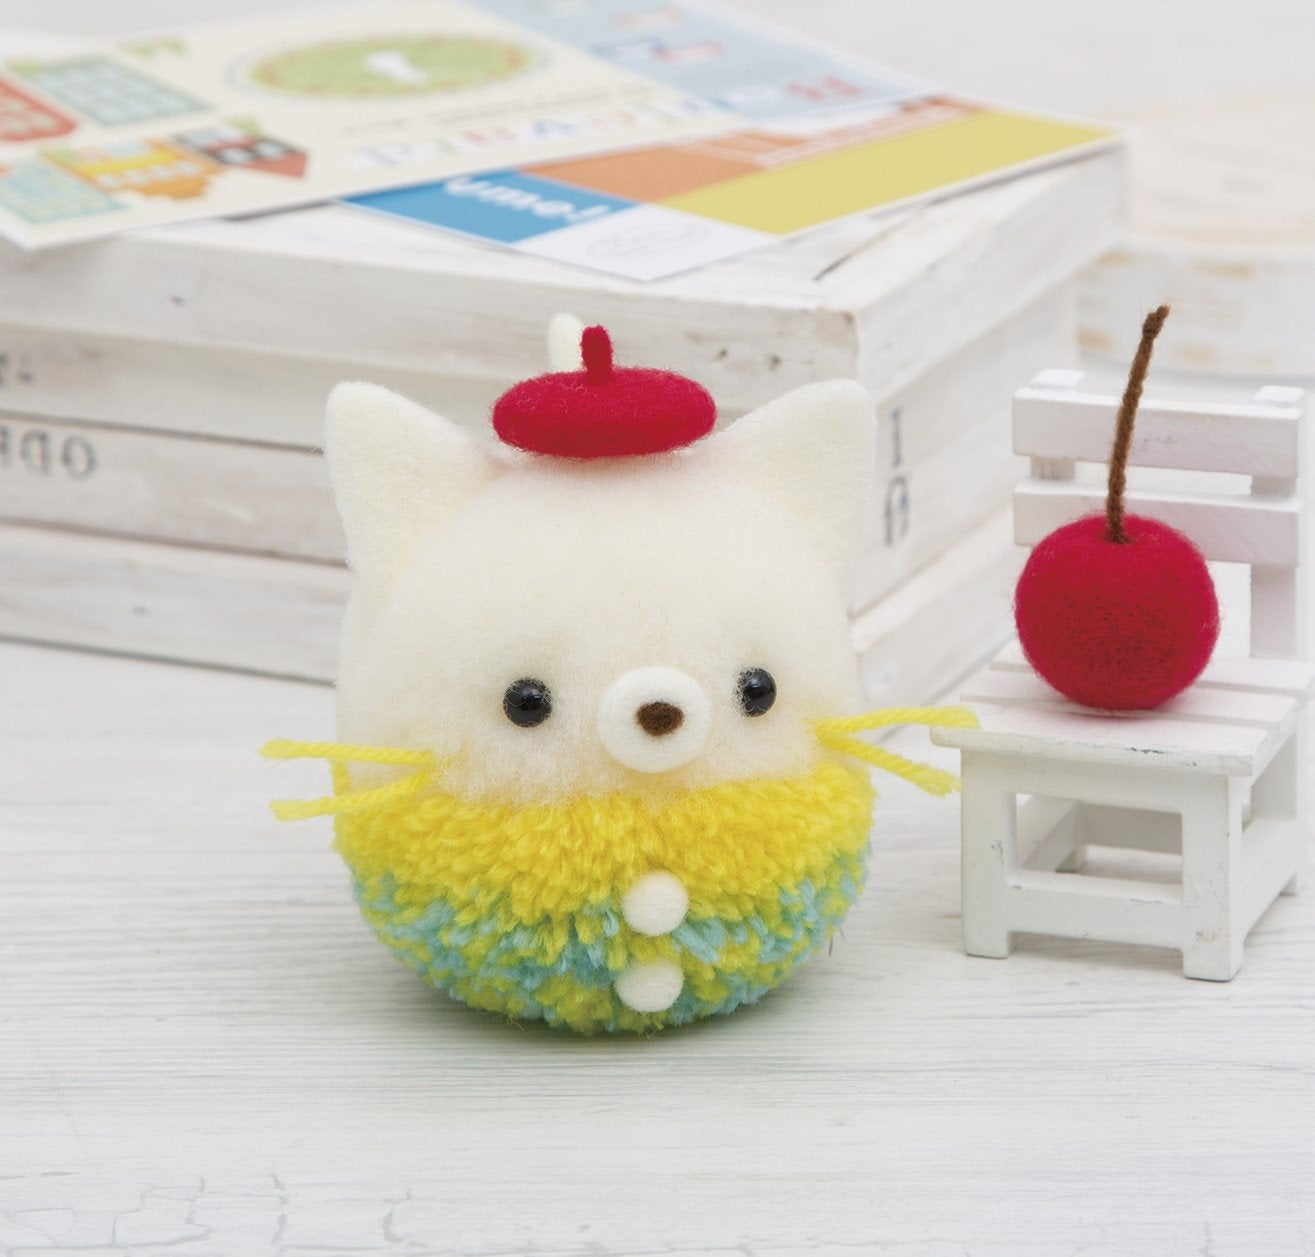 Hamanaka Pom Pom Kit - Yarn x Aclaine Pom Pom- Stylish Kitty